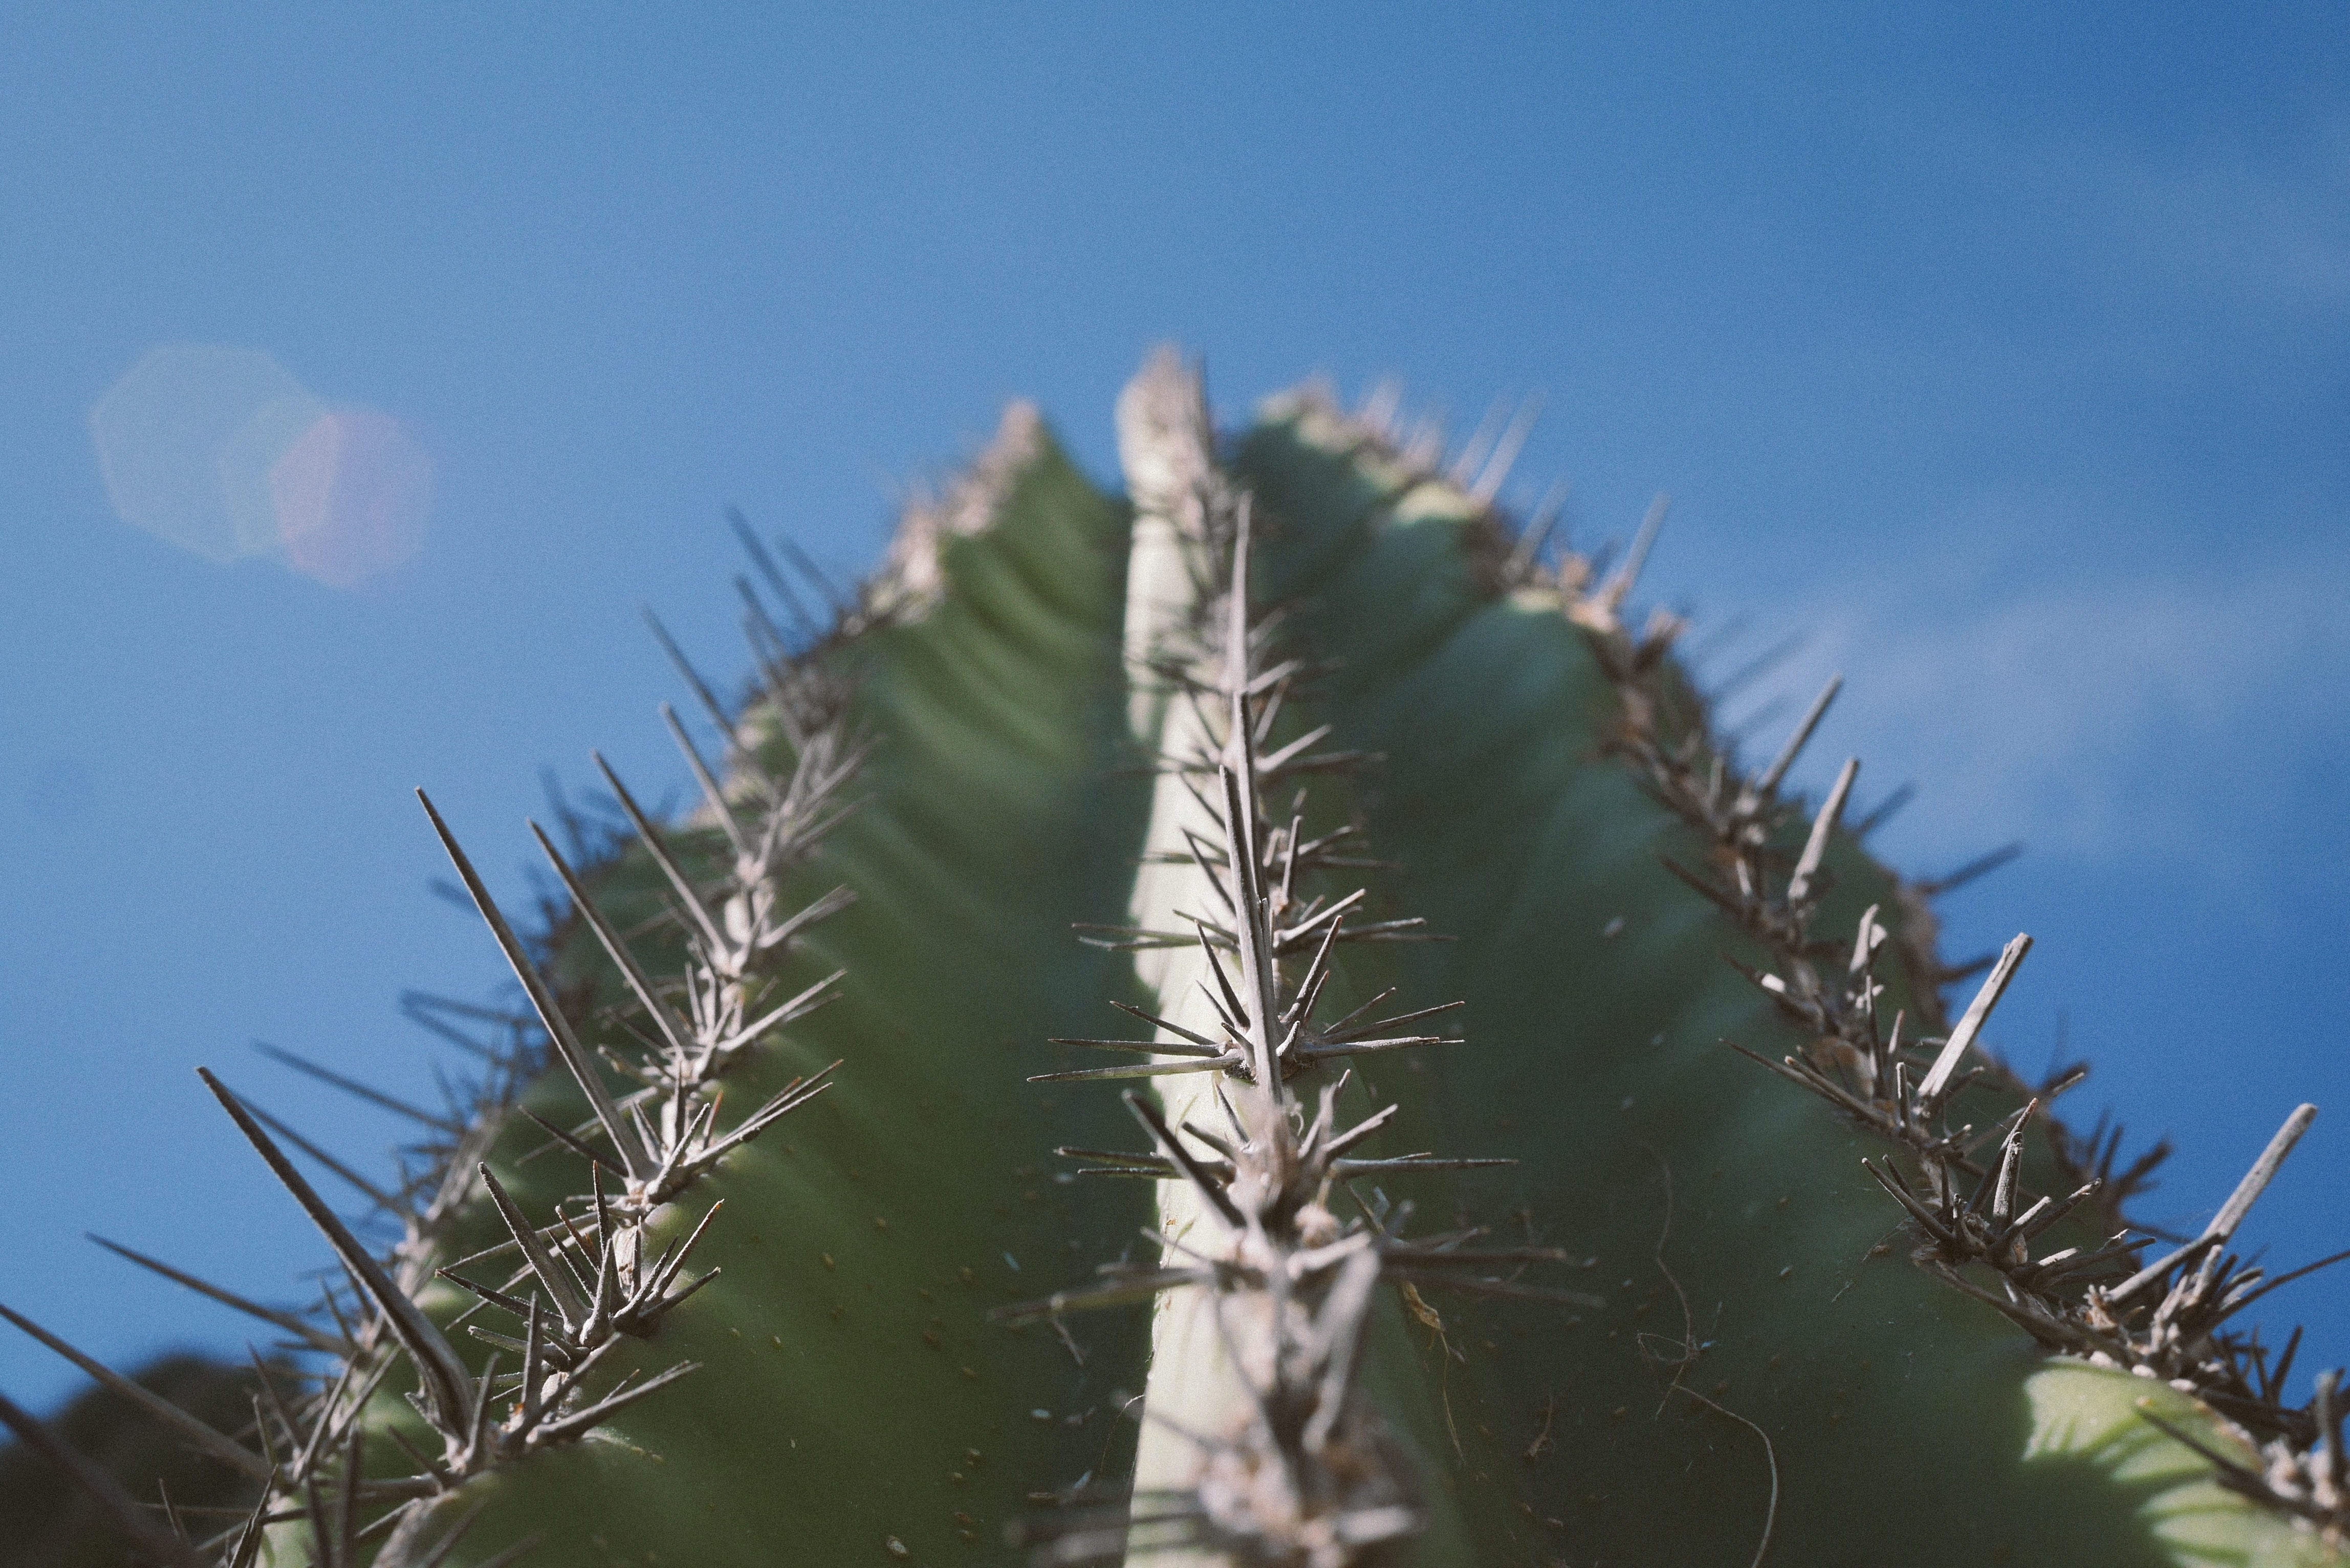 low angle photography of green cactus plant under blue skies at daytime